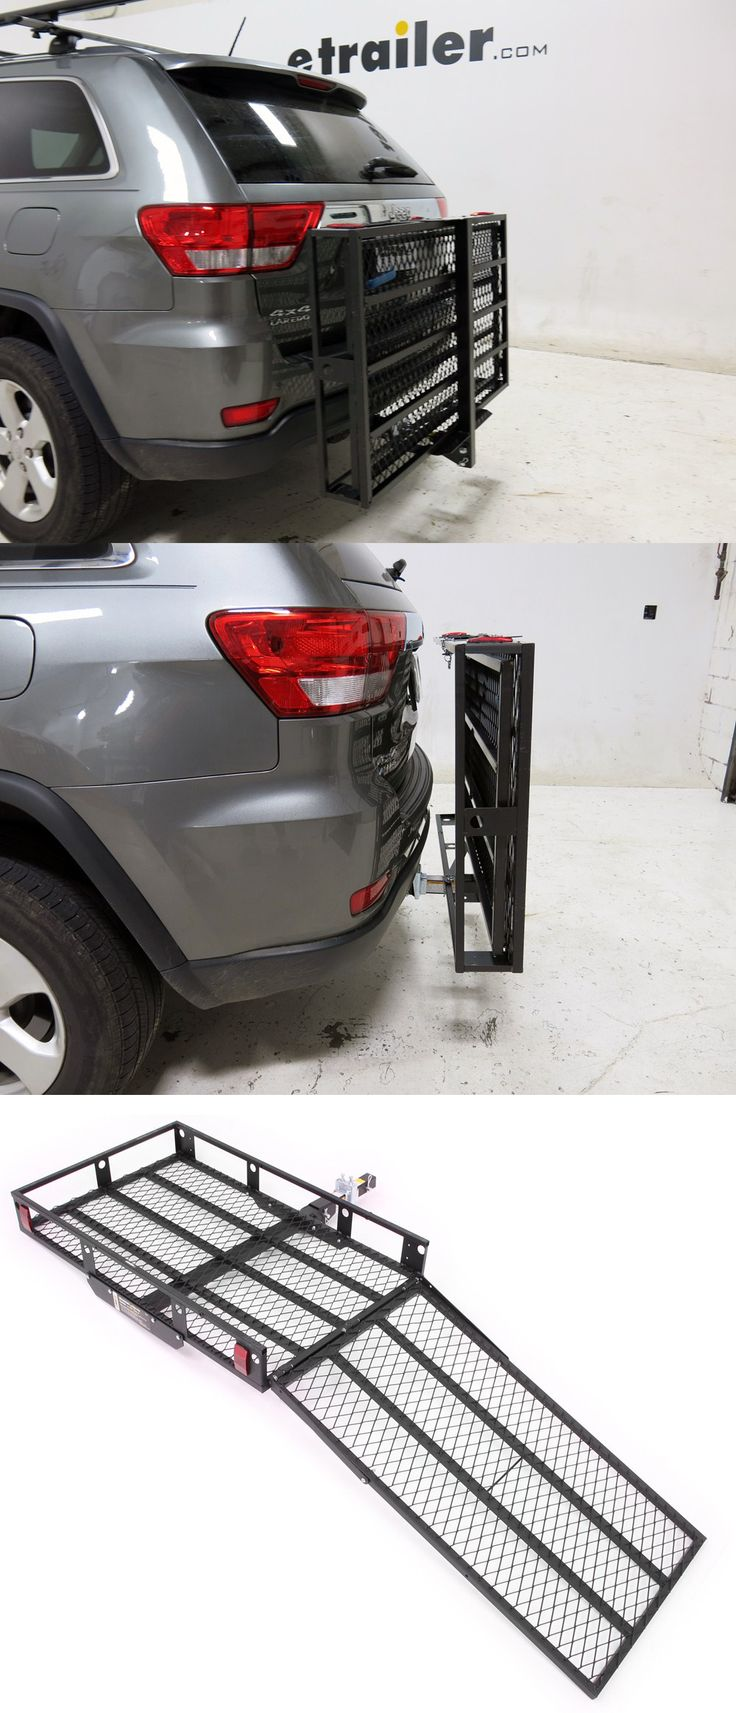 Load or transport a wheelchair or lawn mower with an extra-wide cargo carrier. Compatible with the Jeep Cherokee.